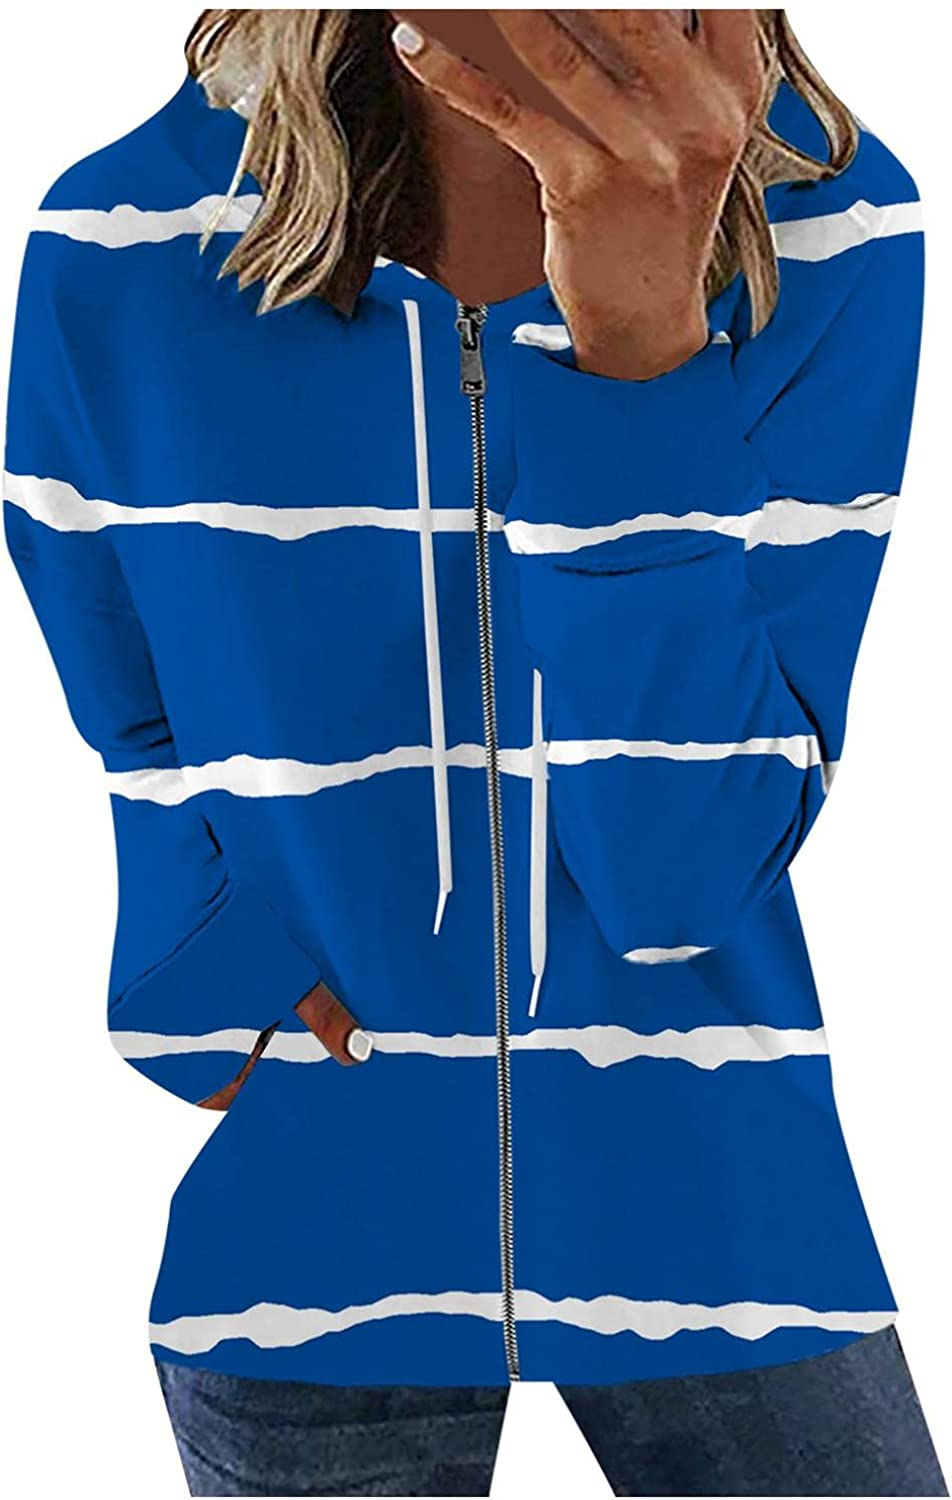 AODONG Womens Zip-Up Hoodie Long Sleeve Striped Lightweight Sweatshirt Pullover Casual Knit Tunic Jacket with Pockets